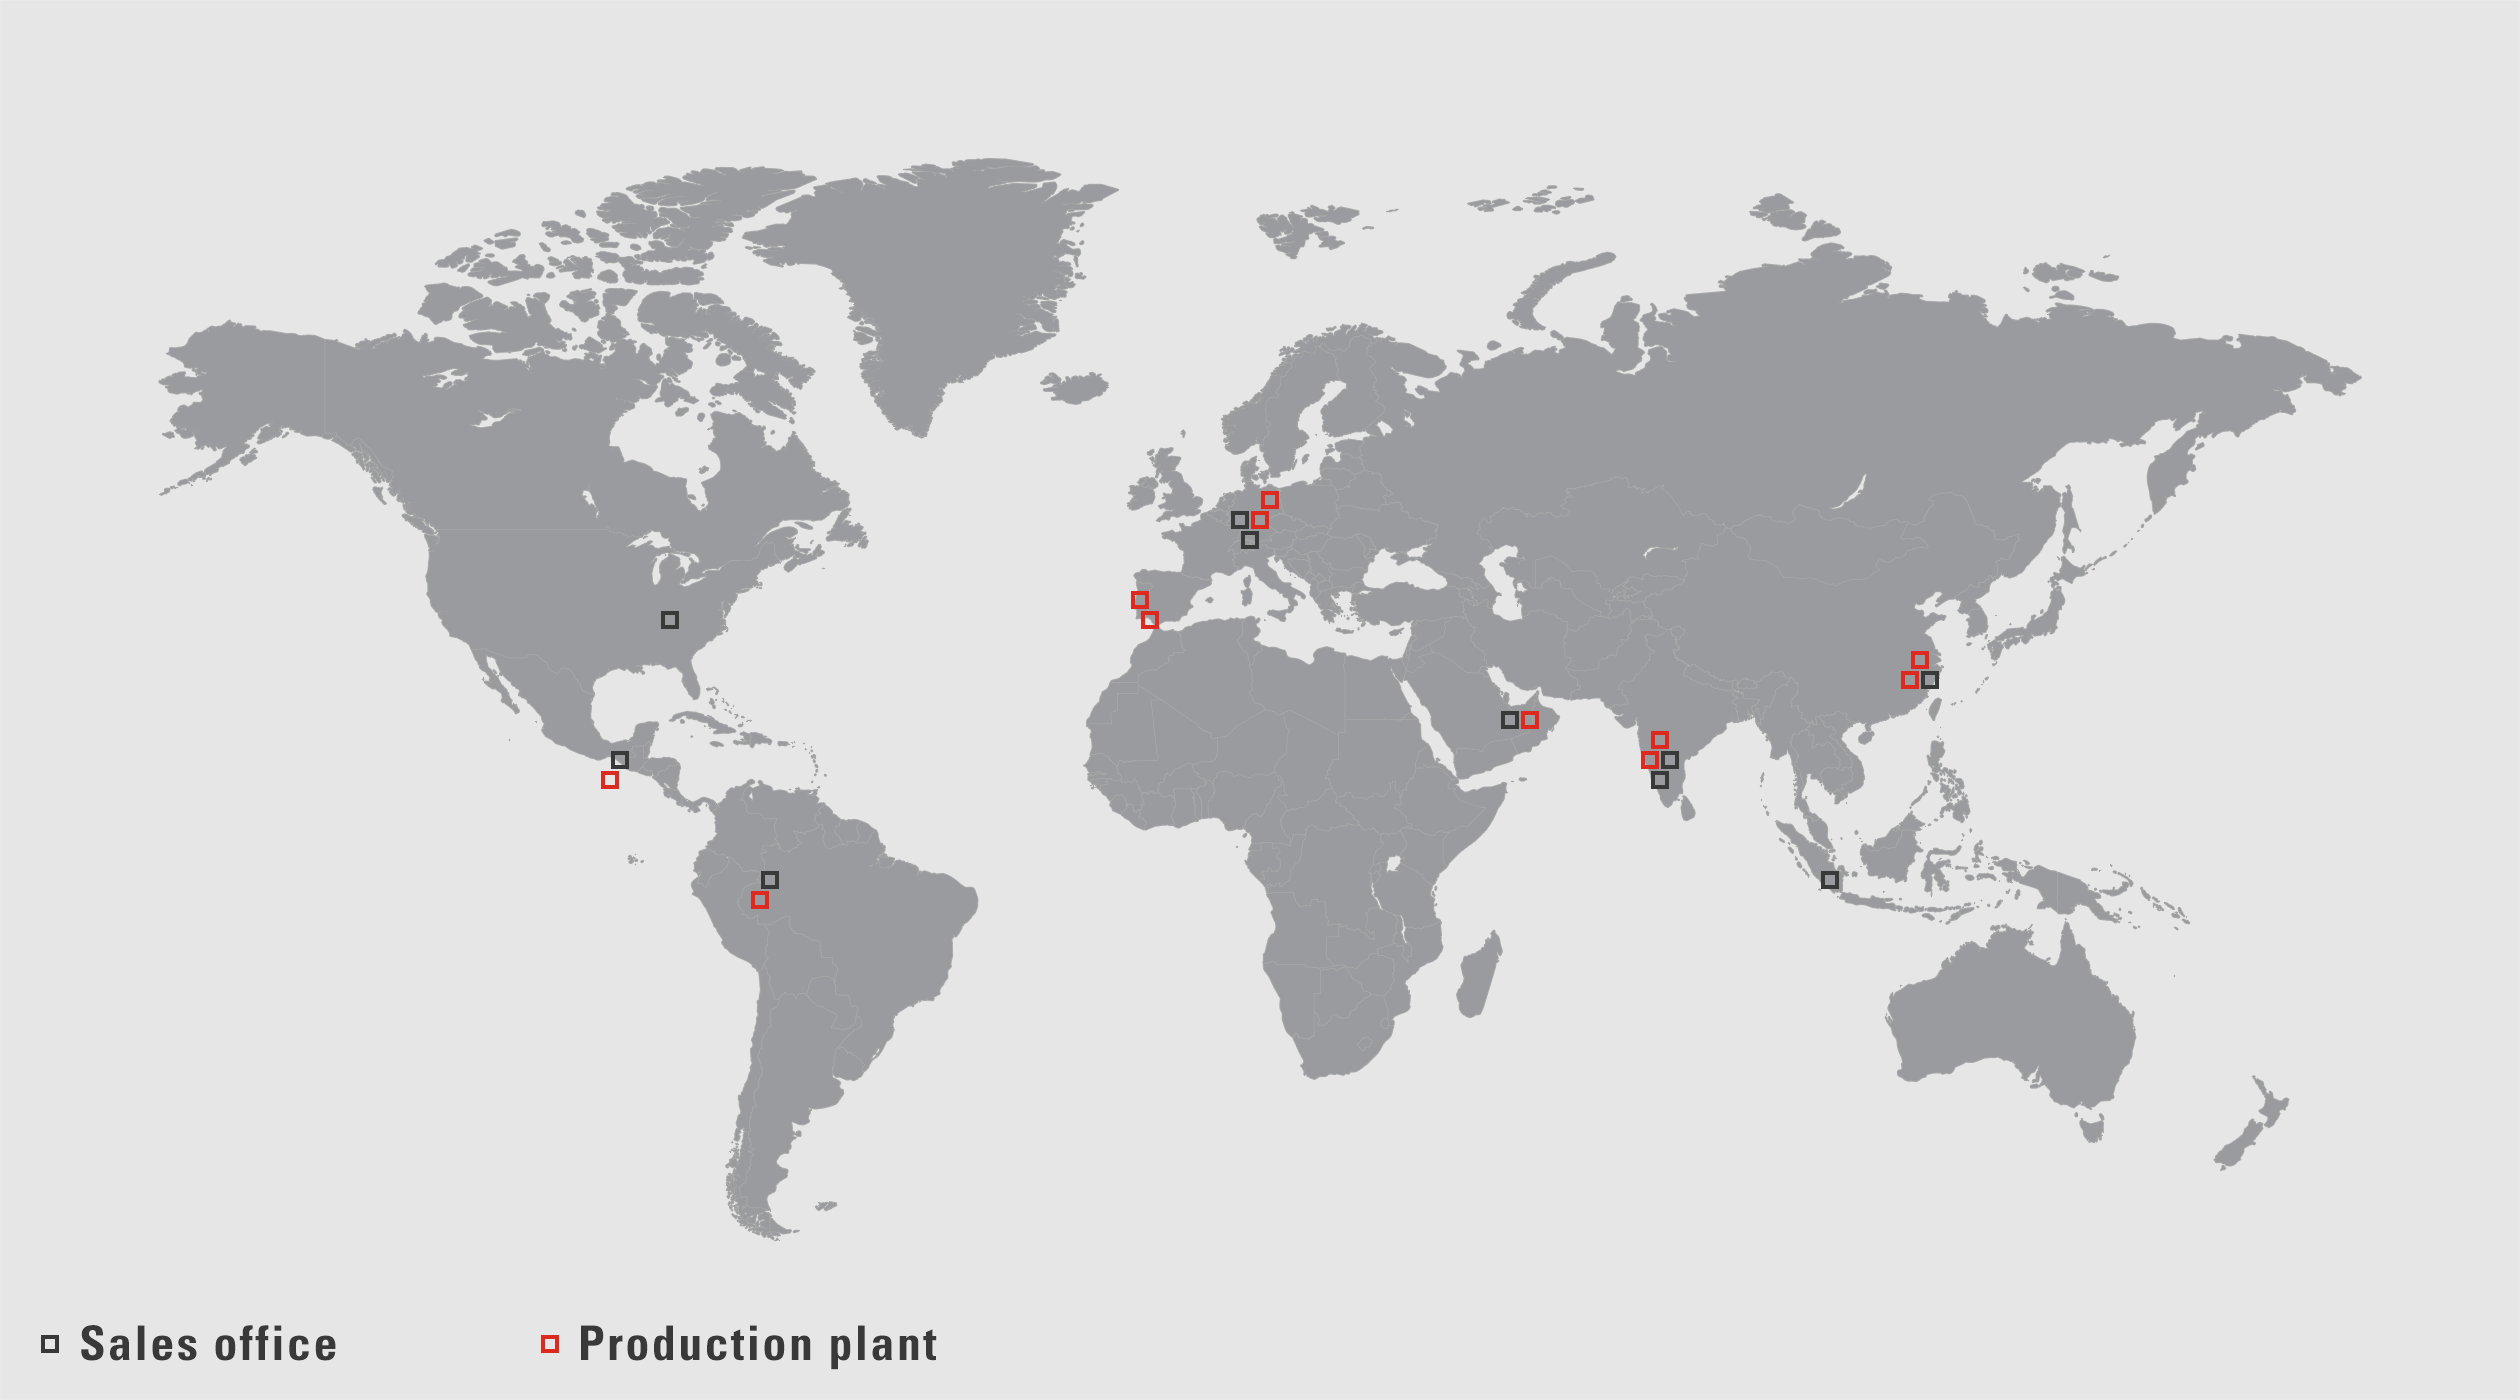 VAUTID sales offices and production plants